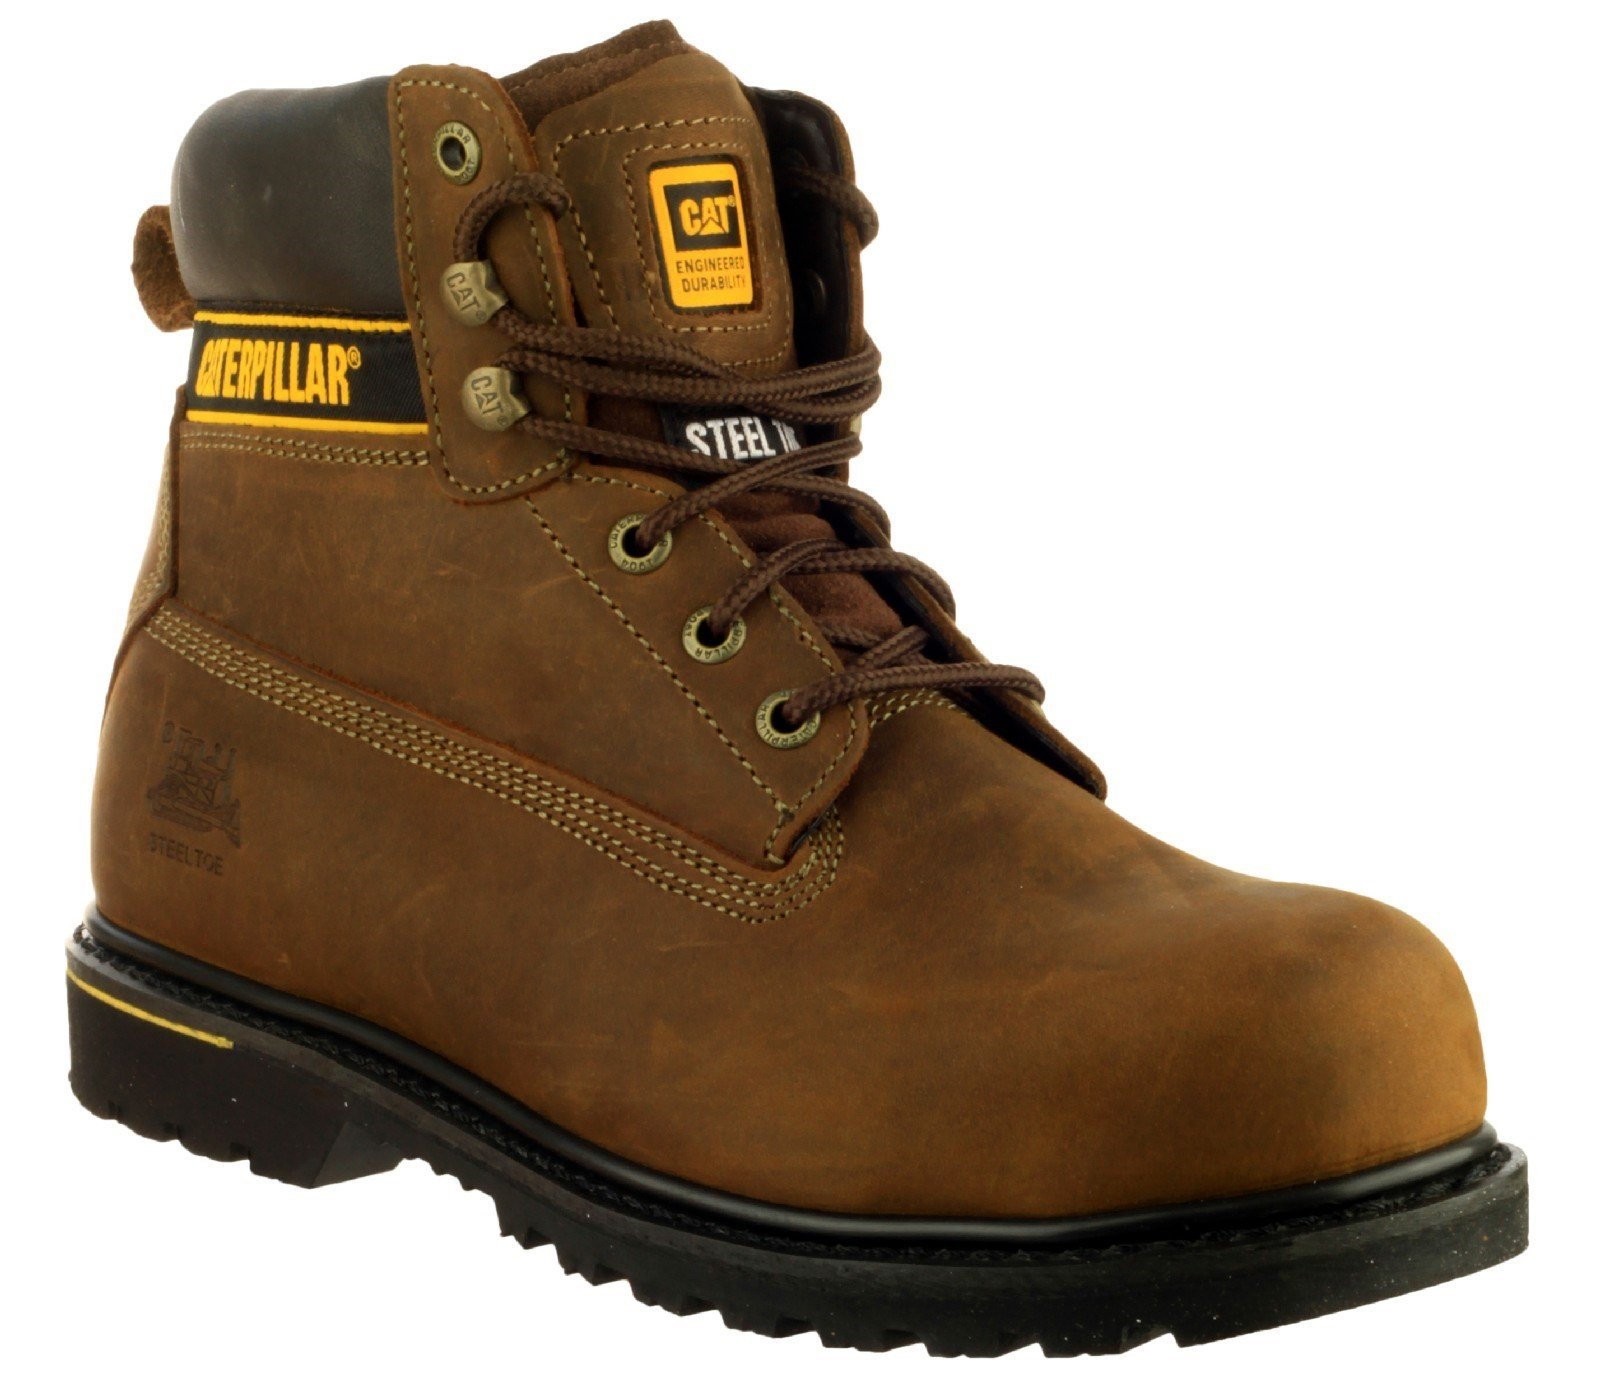 Caterpillar Men's Holton Safety Boot Brown 16106 - Brown 6